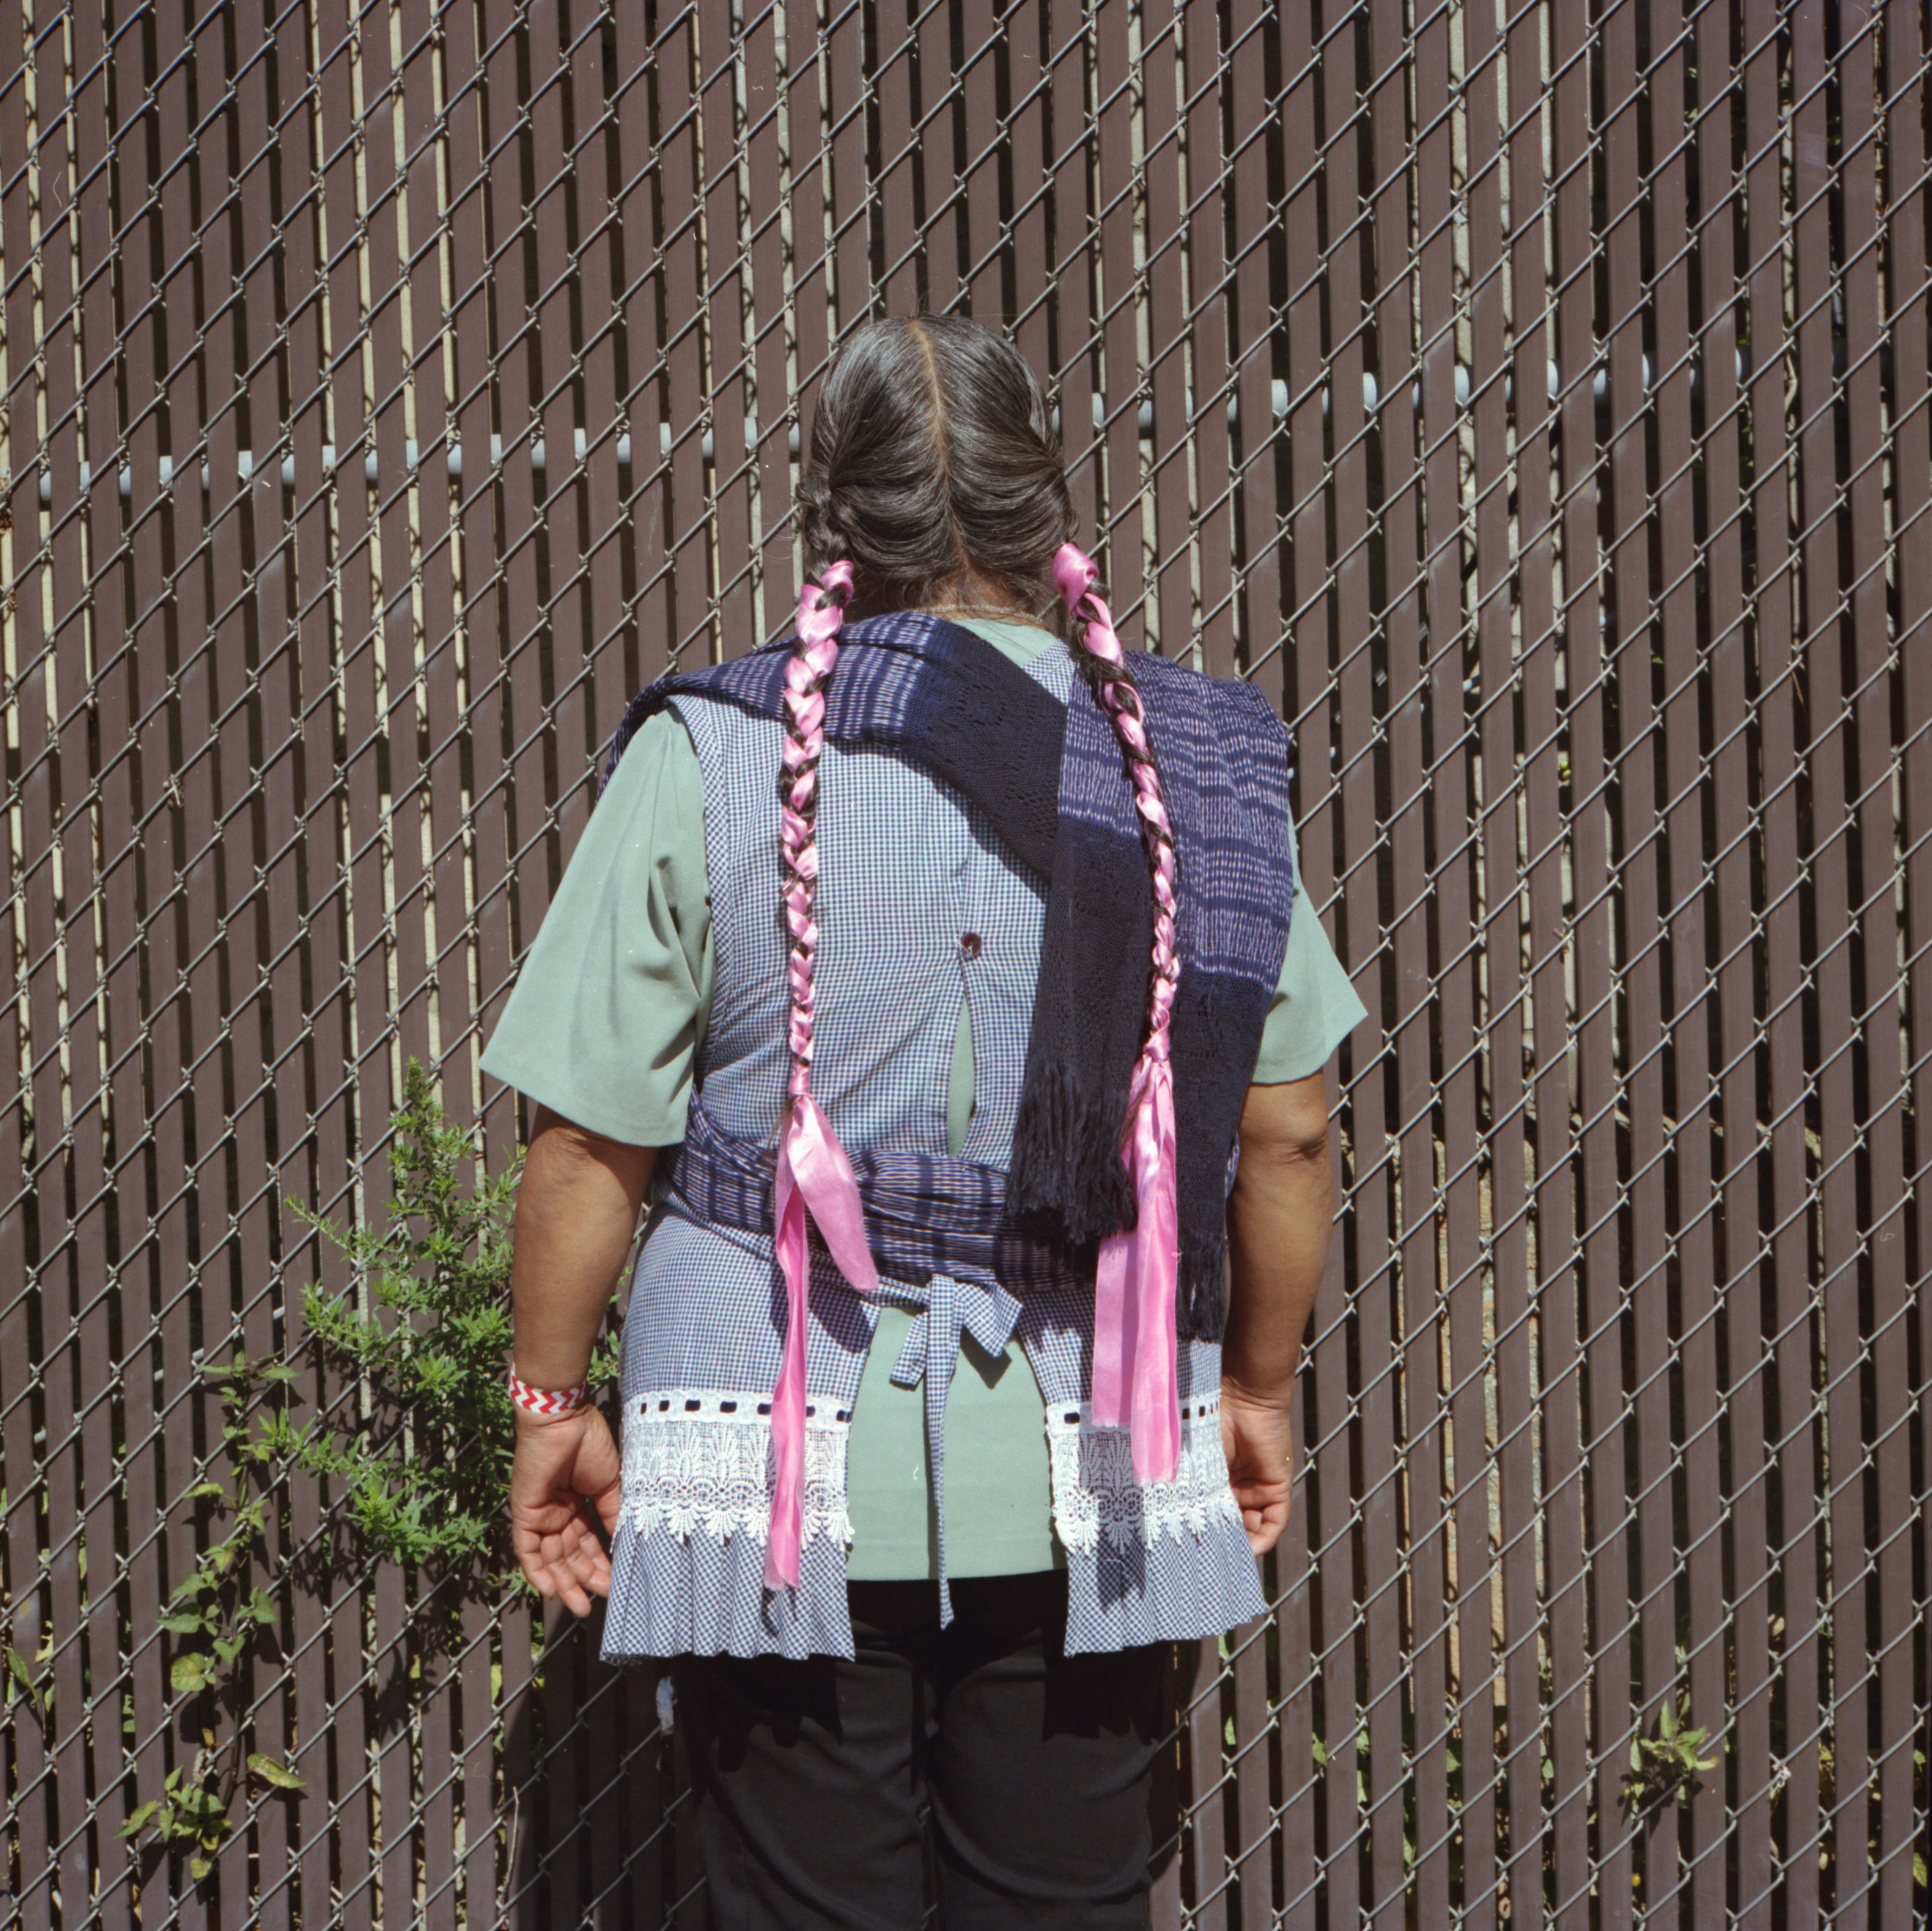 A woman photographed from behind with long braids and ribbons in her braids